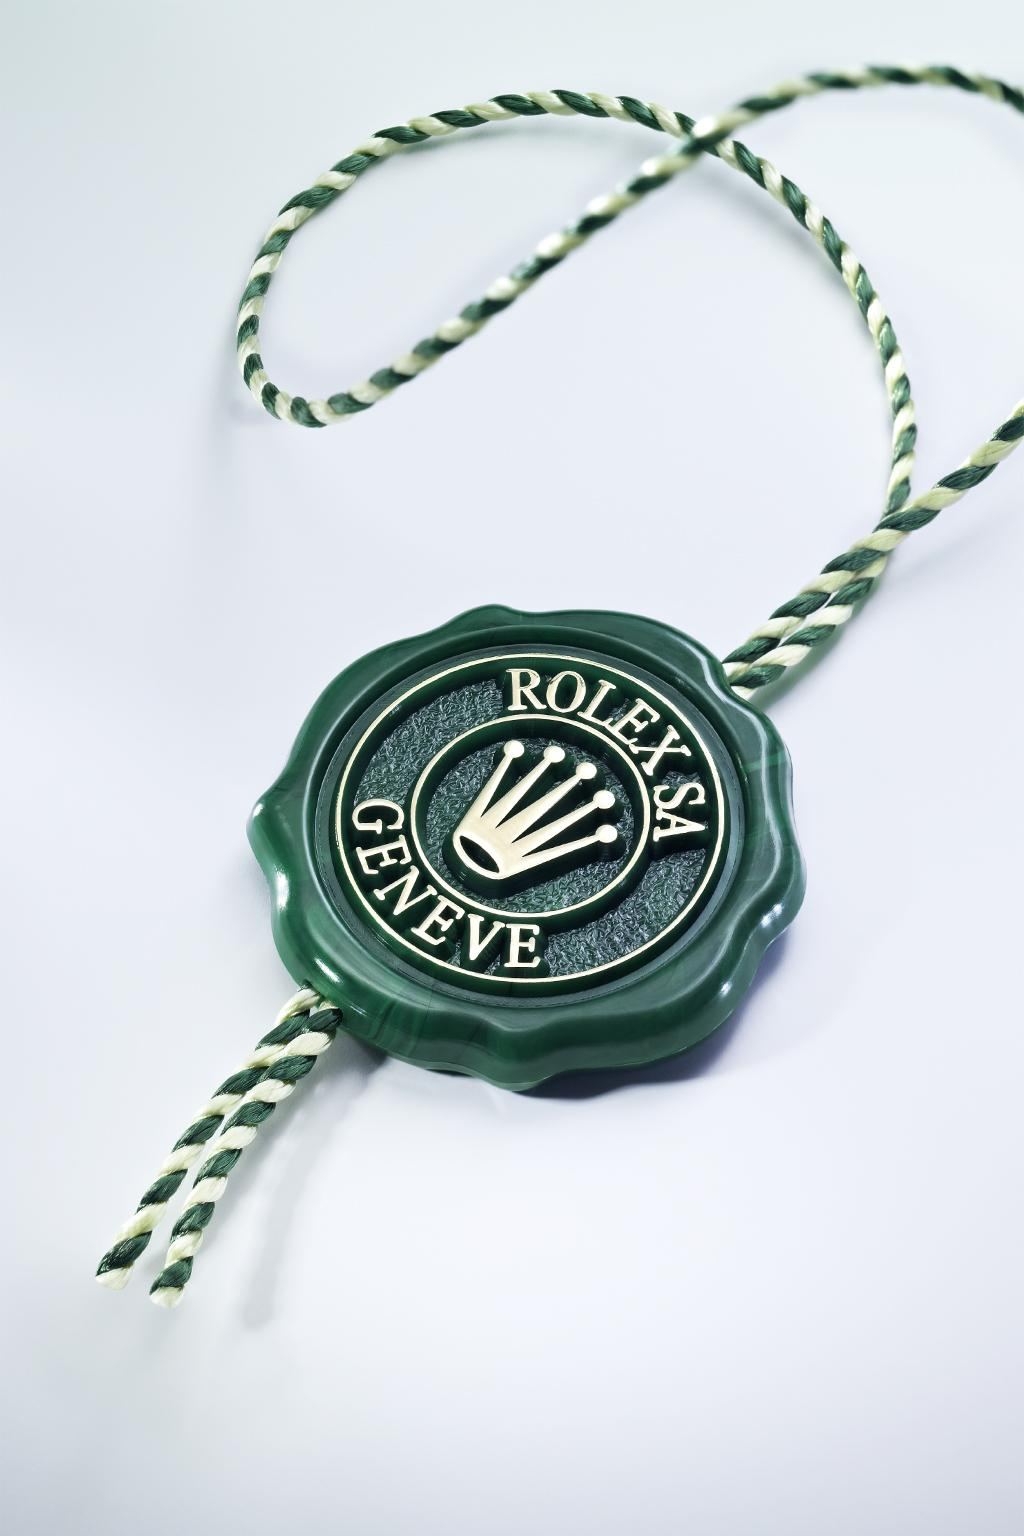 Features SUPERLATIVE CHRONOMETER The green seal accompanying every Rolex watch is a symbol of its status as a Superlative Chronometer.